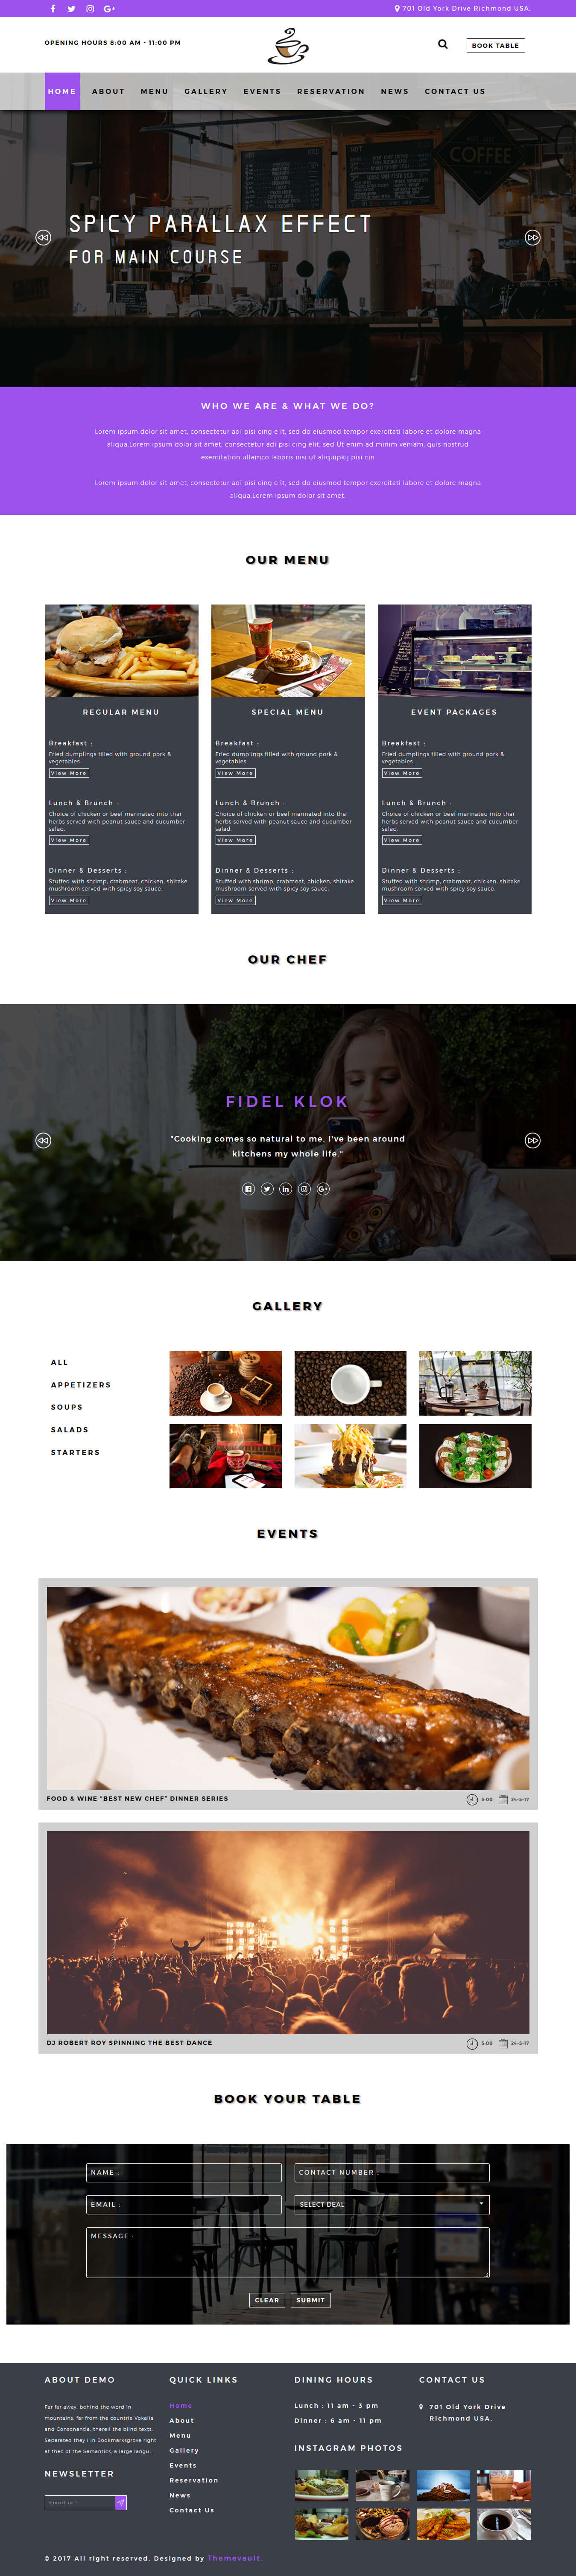 Kafe – Responsive Free HTML5 Coffee Shop Website Template